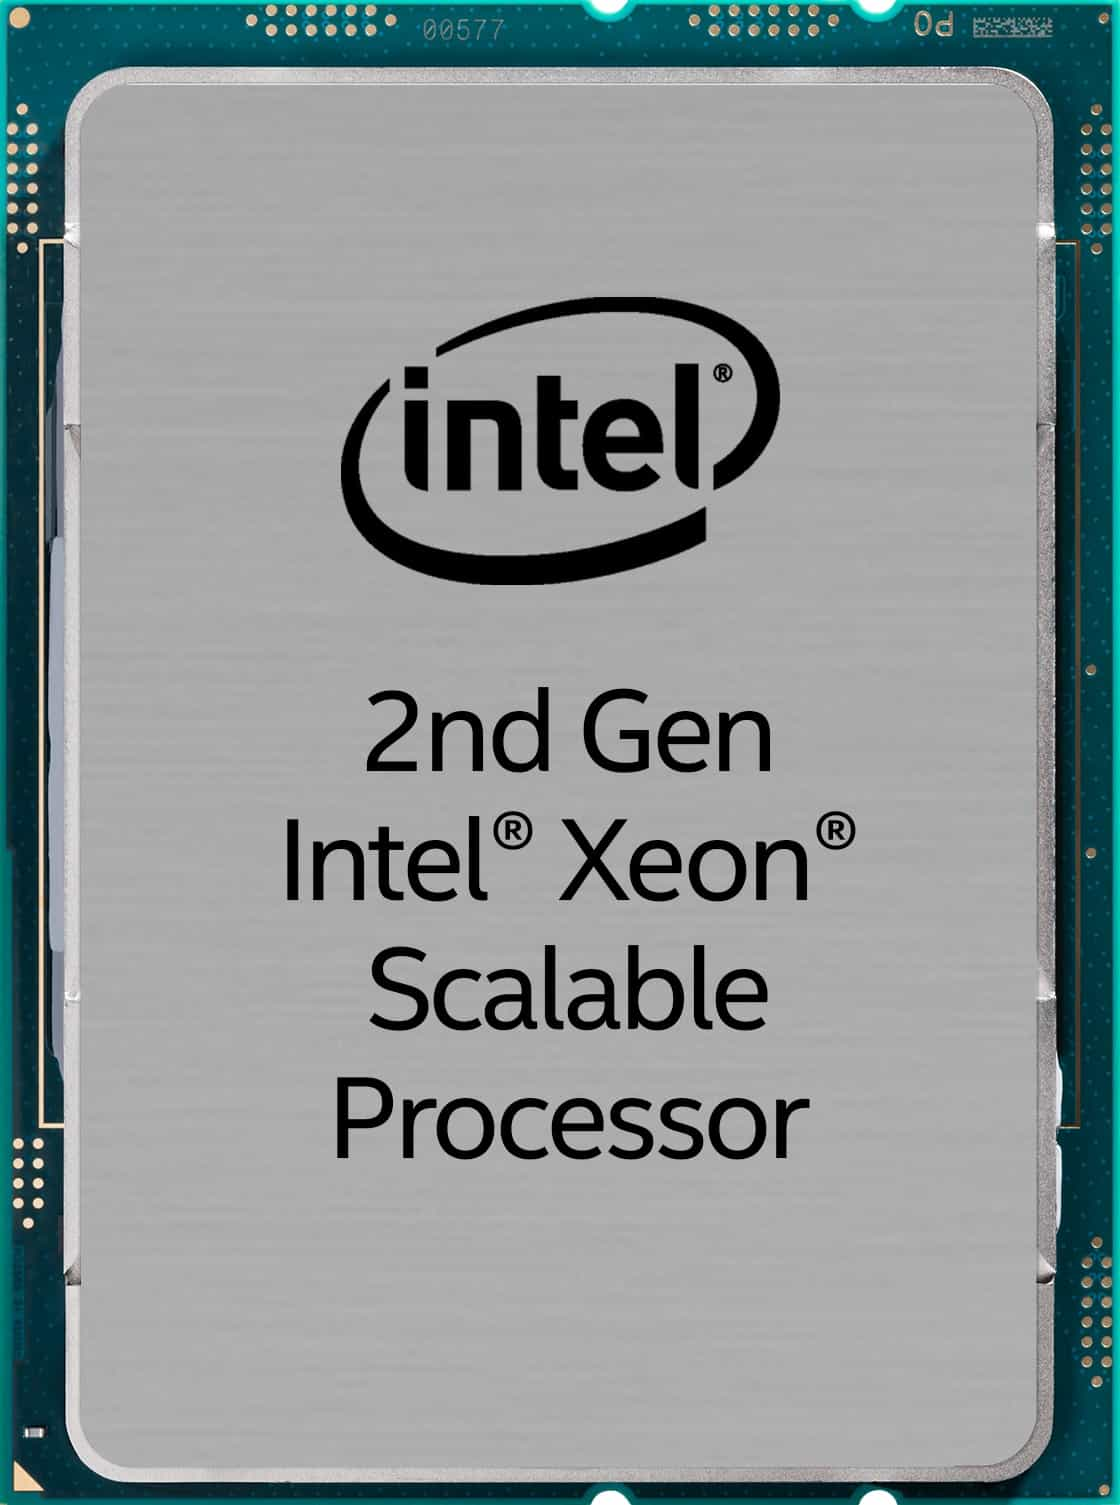 Intel 2nd Gen Xeon Scalable 1